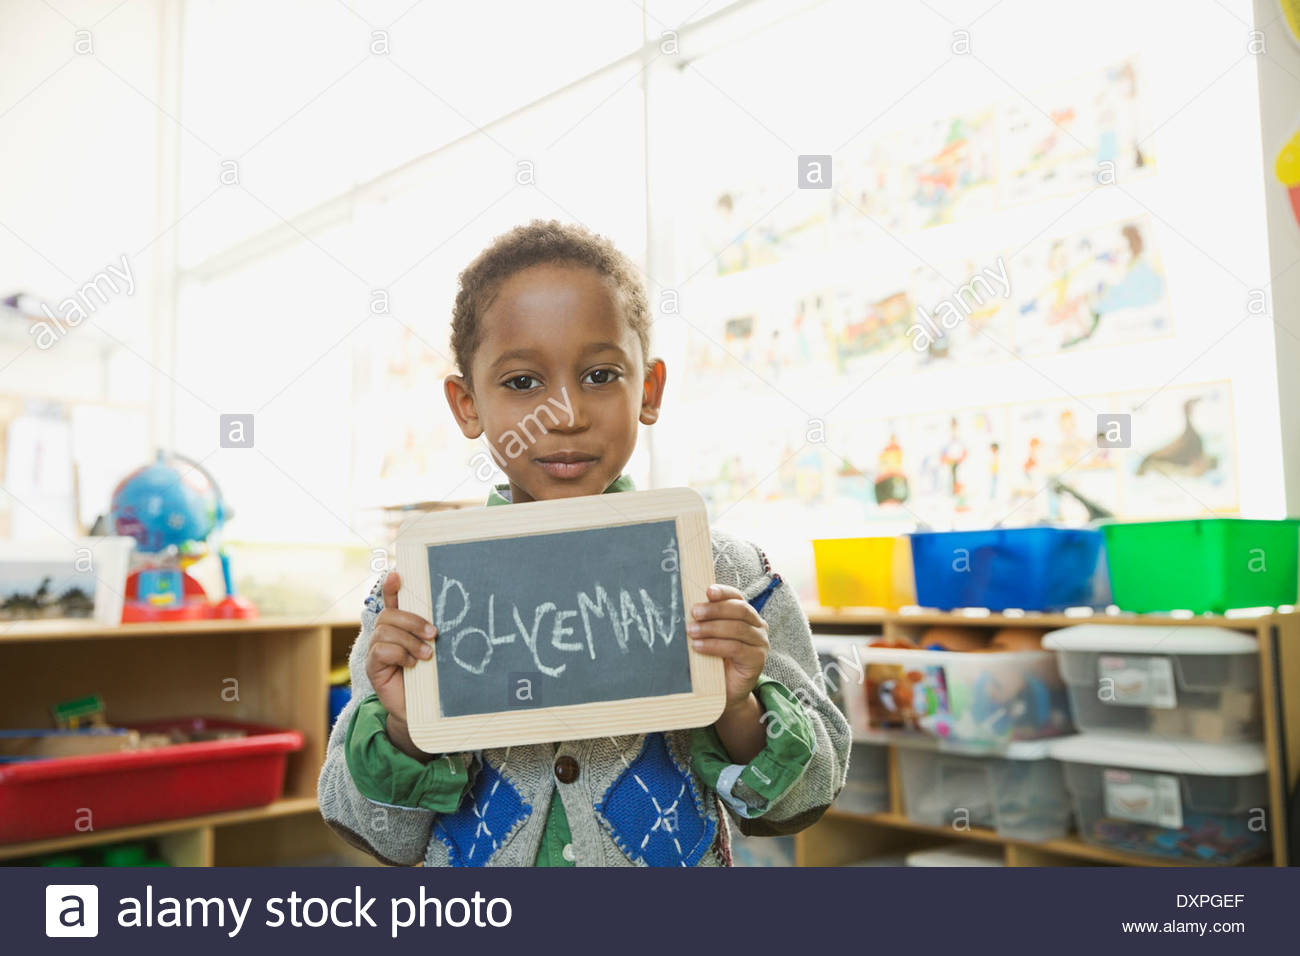 Portrait of boy holding slate with 'Policeman' written on it - Stock Image